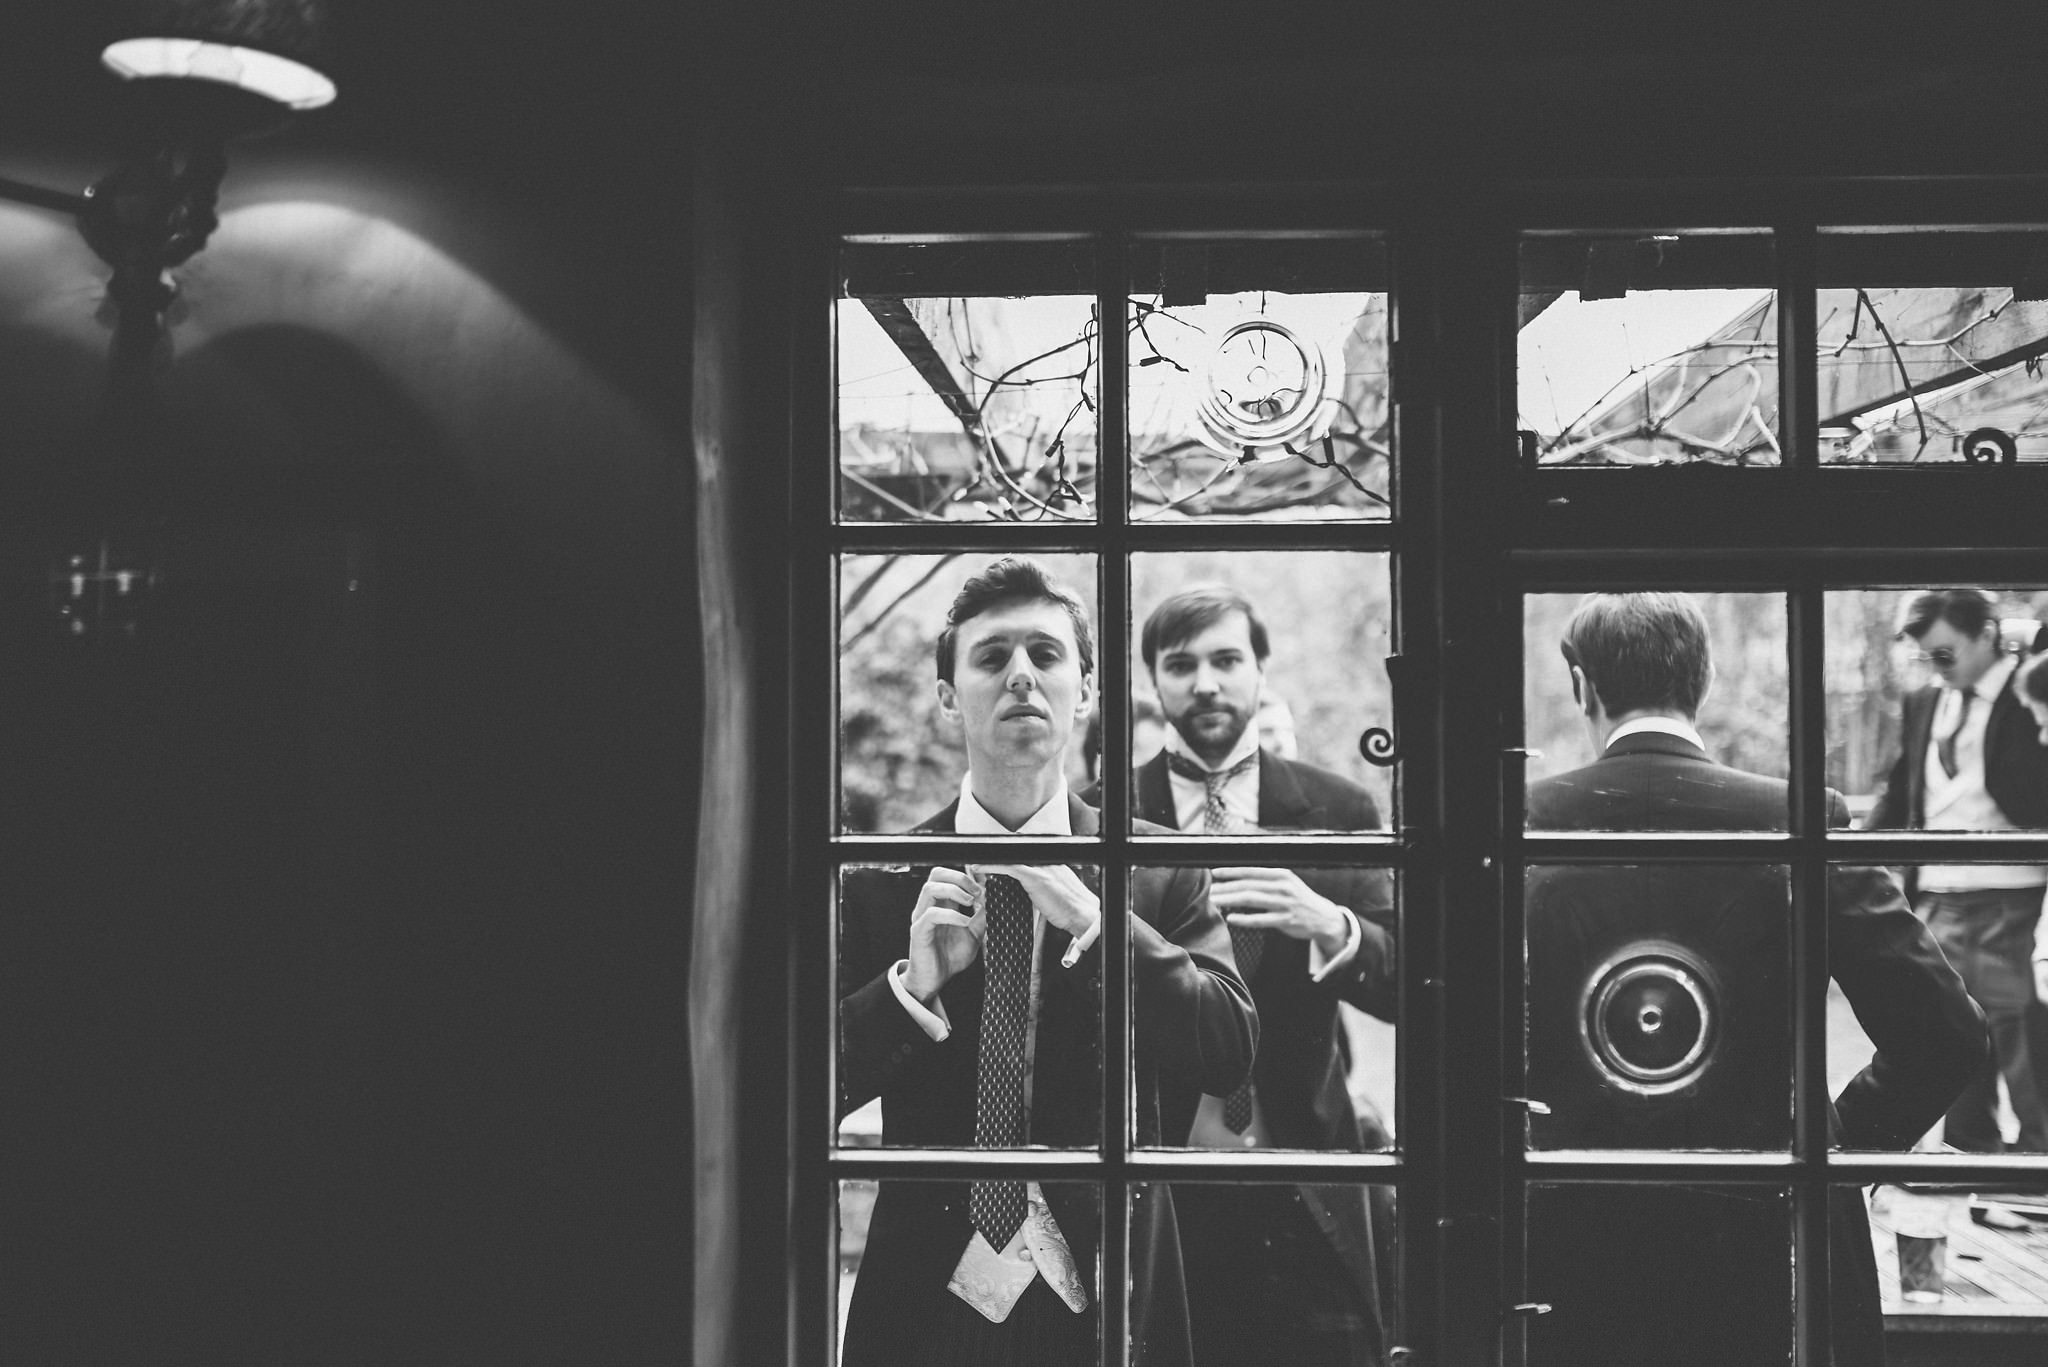 Groom and Groomsmen getting ready through the window